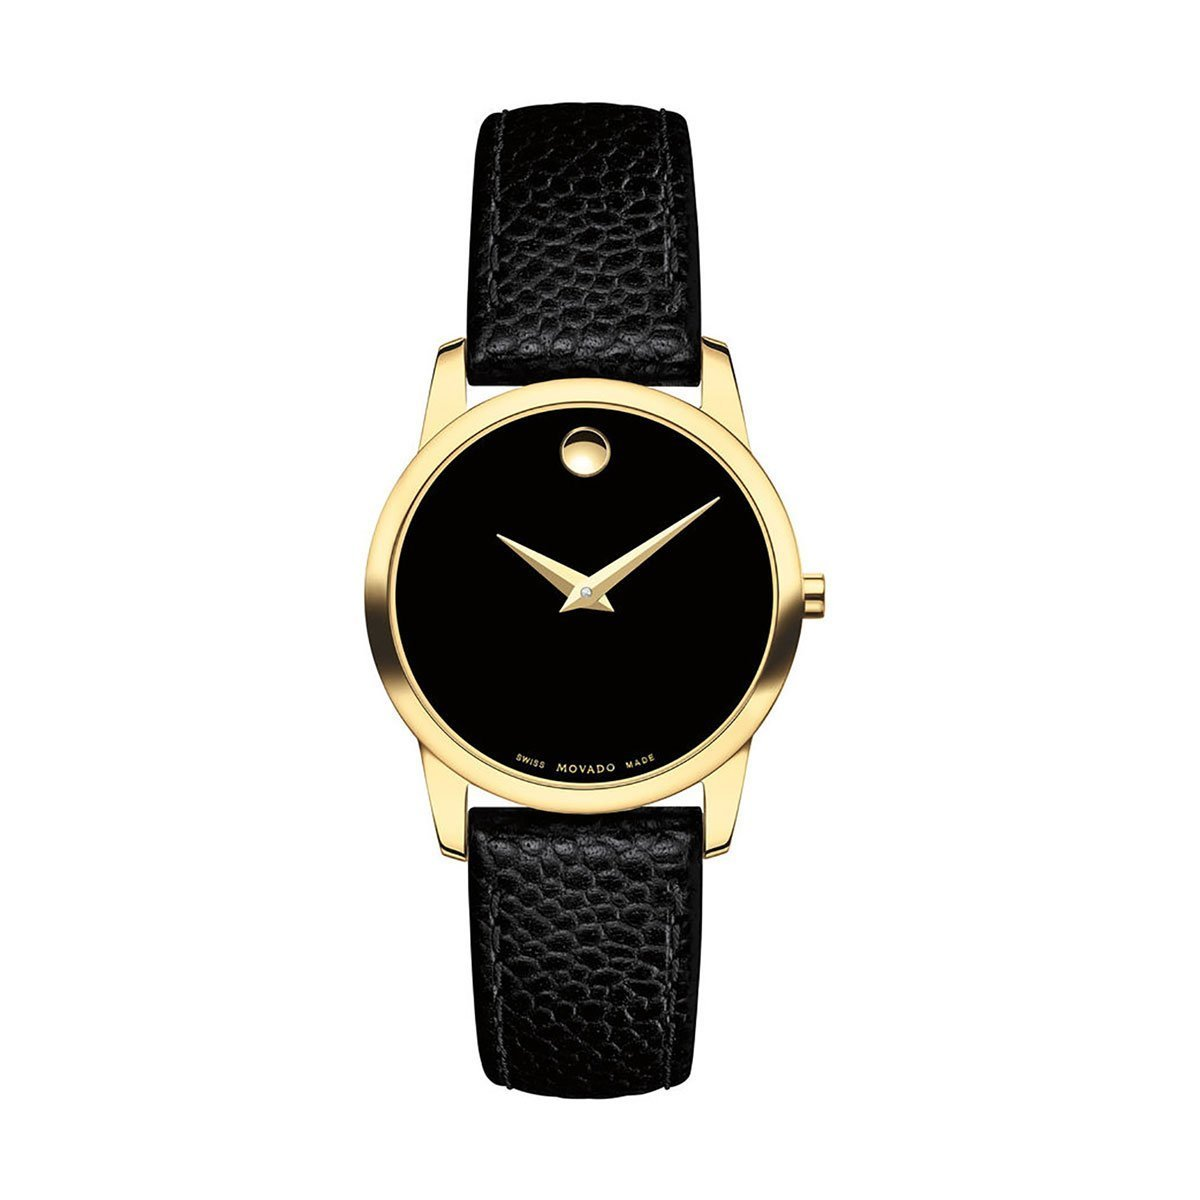 Movado Ladies Museum Classic Analog Business Quartz Watch (Imported) 0607016 by Movado (Image #1)